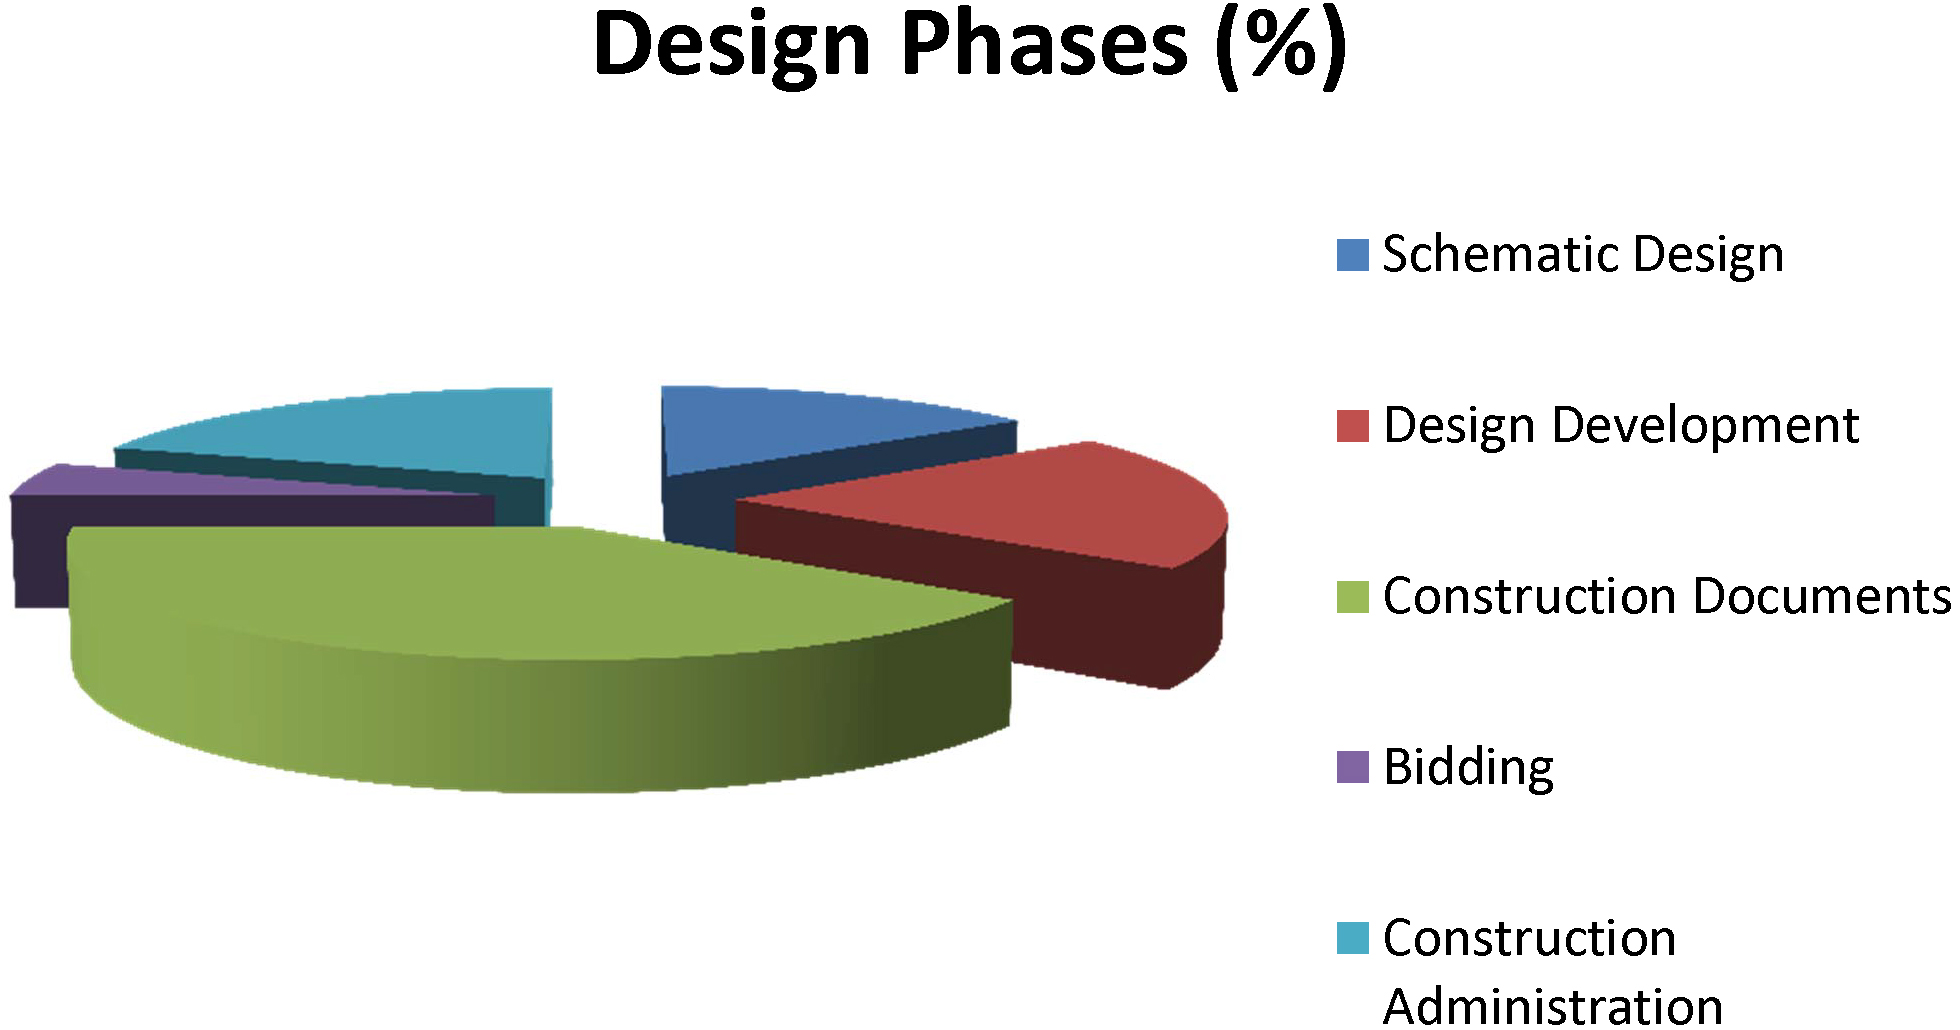 Architectural Phases Pie Chart Architect